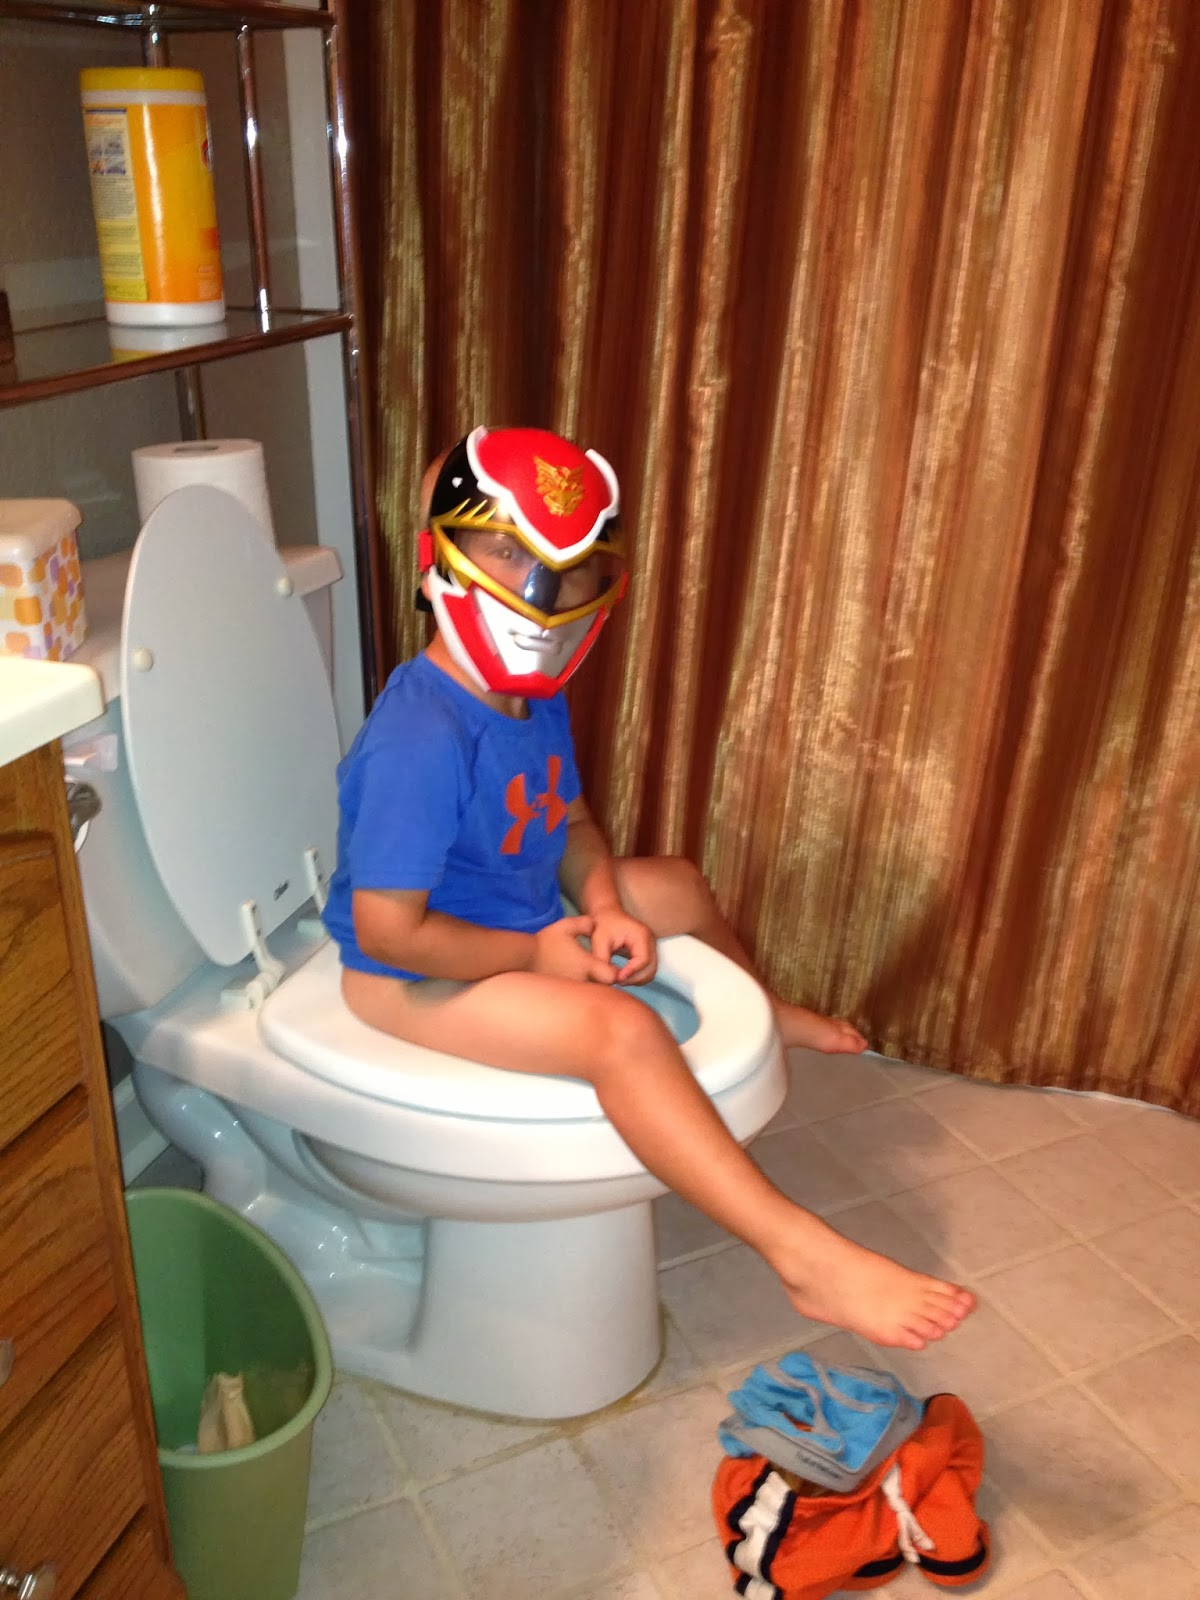 nudist kid pee Let me clarify for you if your not great at reading between the  lines...Potty training my son was the SINGLE MOST DIFFICULT THING I HAVE  DONE SO FAR AS A ...